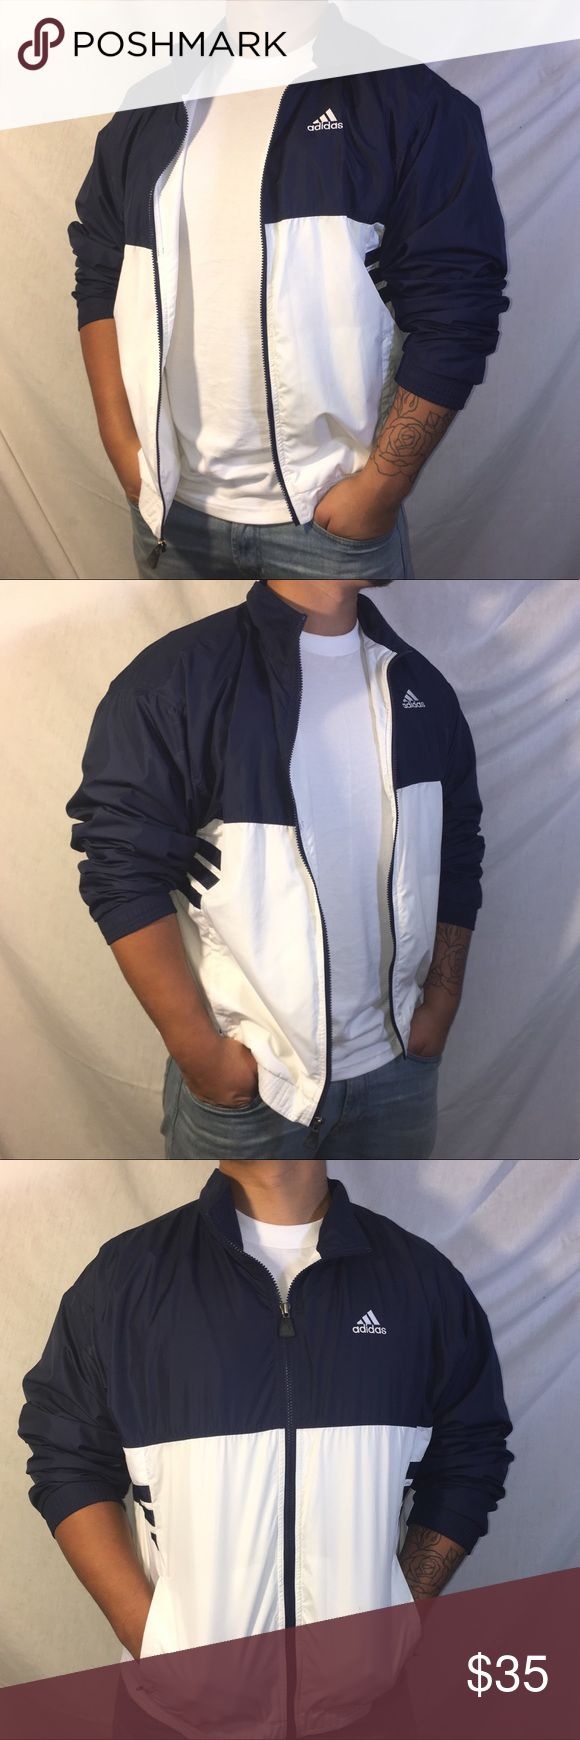 Vintage Adidas Zip Up Windbreaker Vintage Adidas blue and white striped zip up Windbreaker in really nice condition Adidas Jackets & Coats Windbreakers